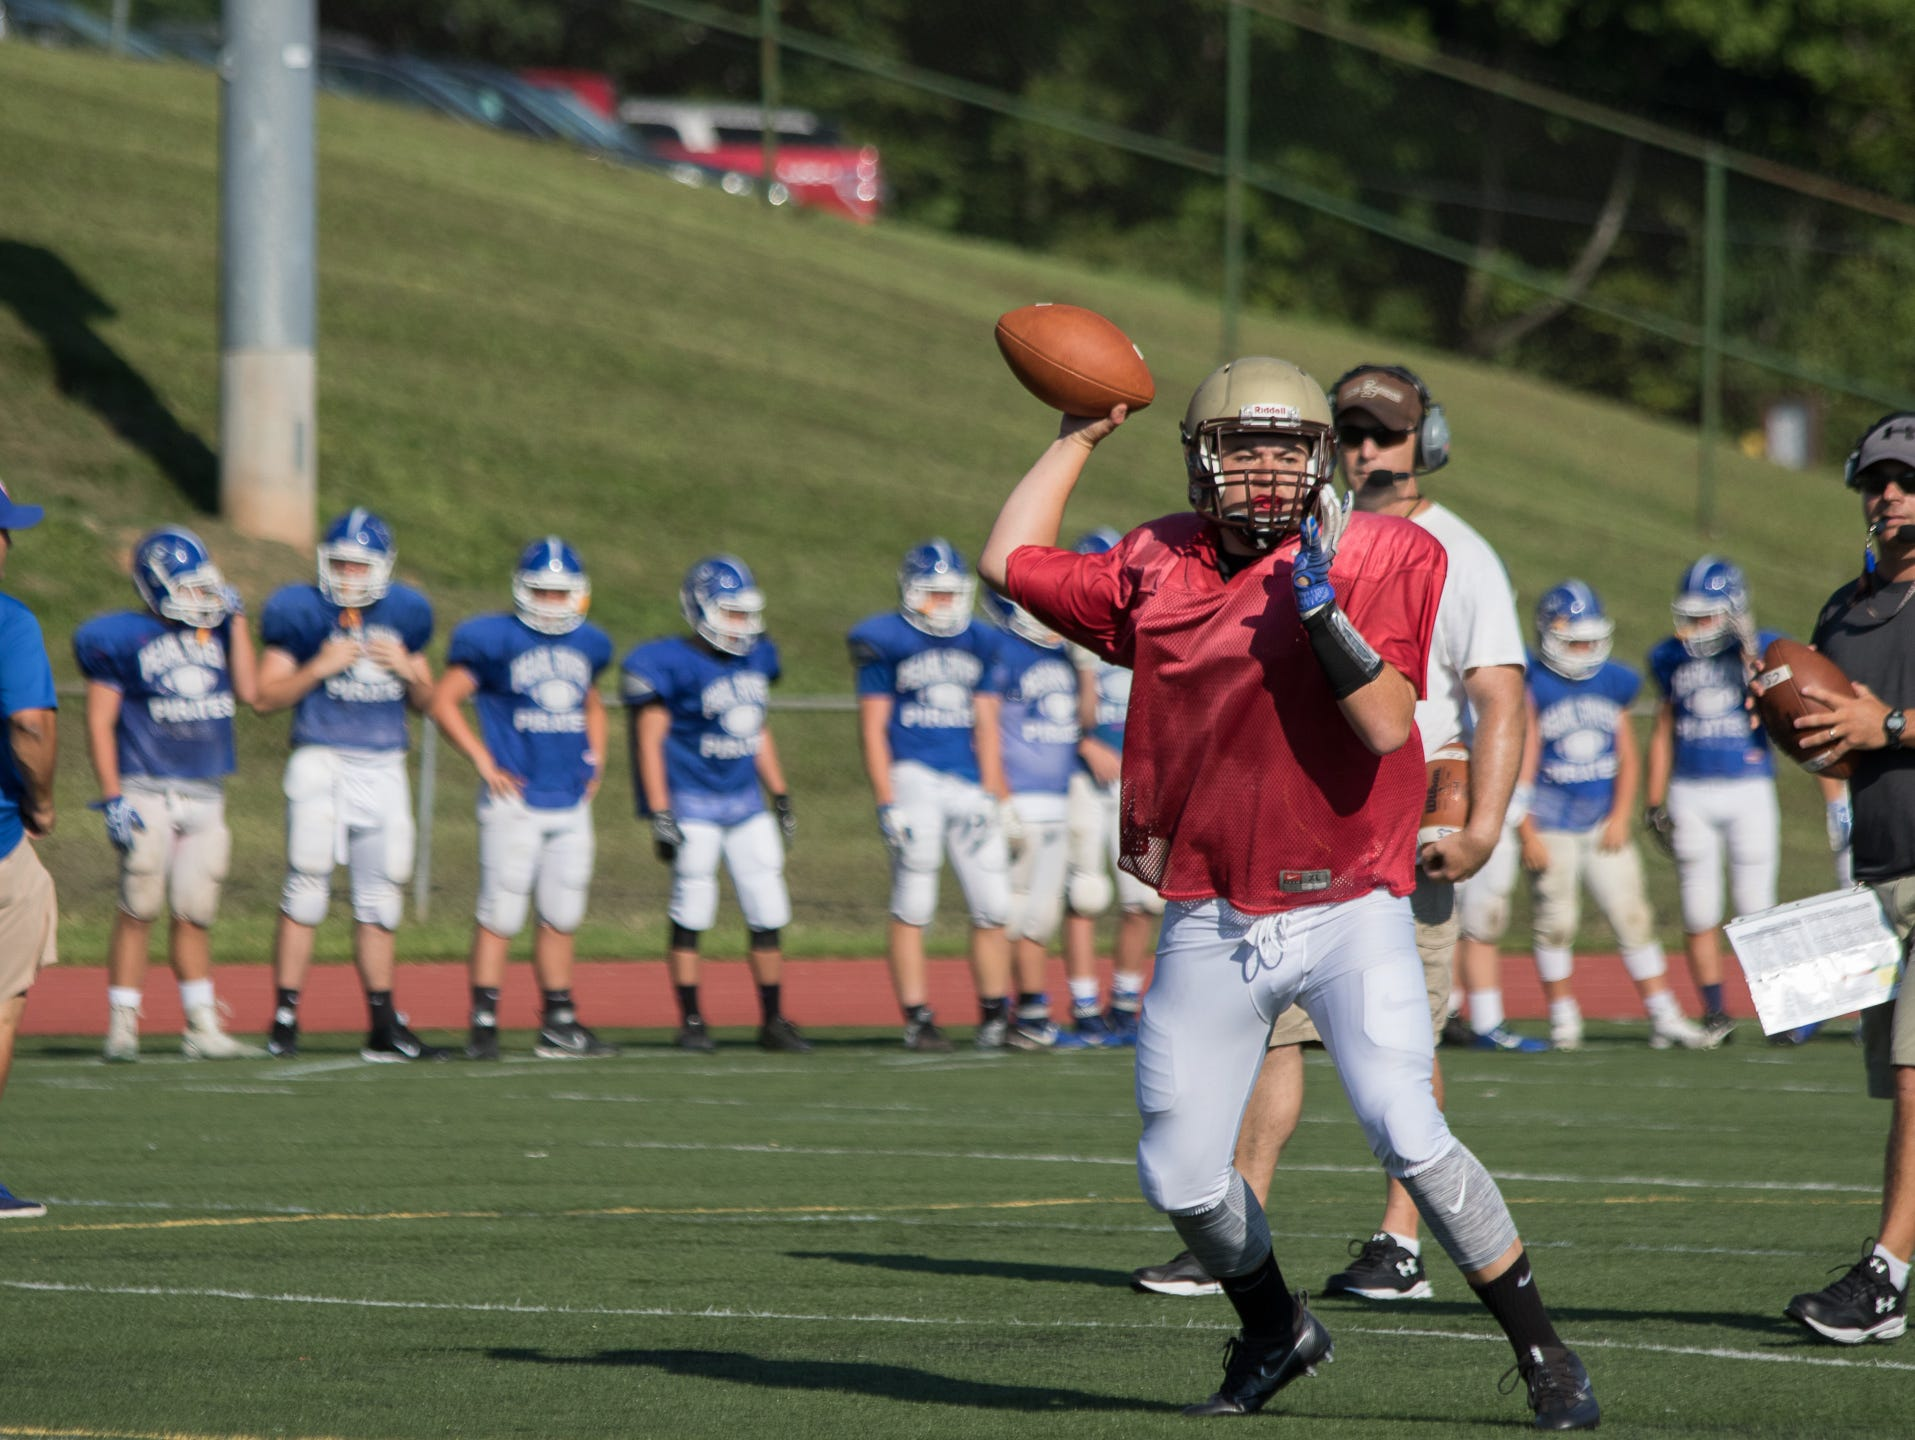 Clarkstown South QB Matt Jung looks for an open receiver during a preseason scrimmage in West Nyack on Saturday. The Vikings hosted Pearl River, Nyack and Fox Lane.